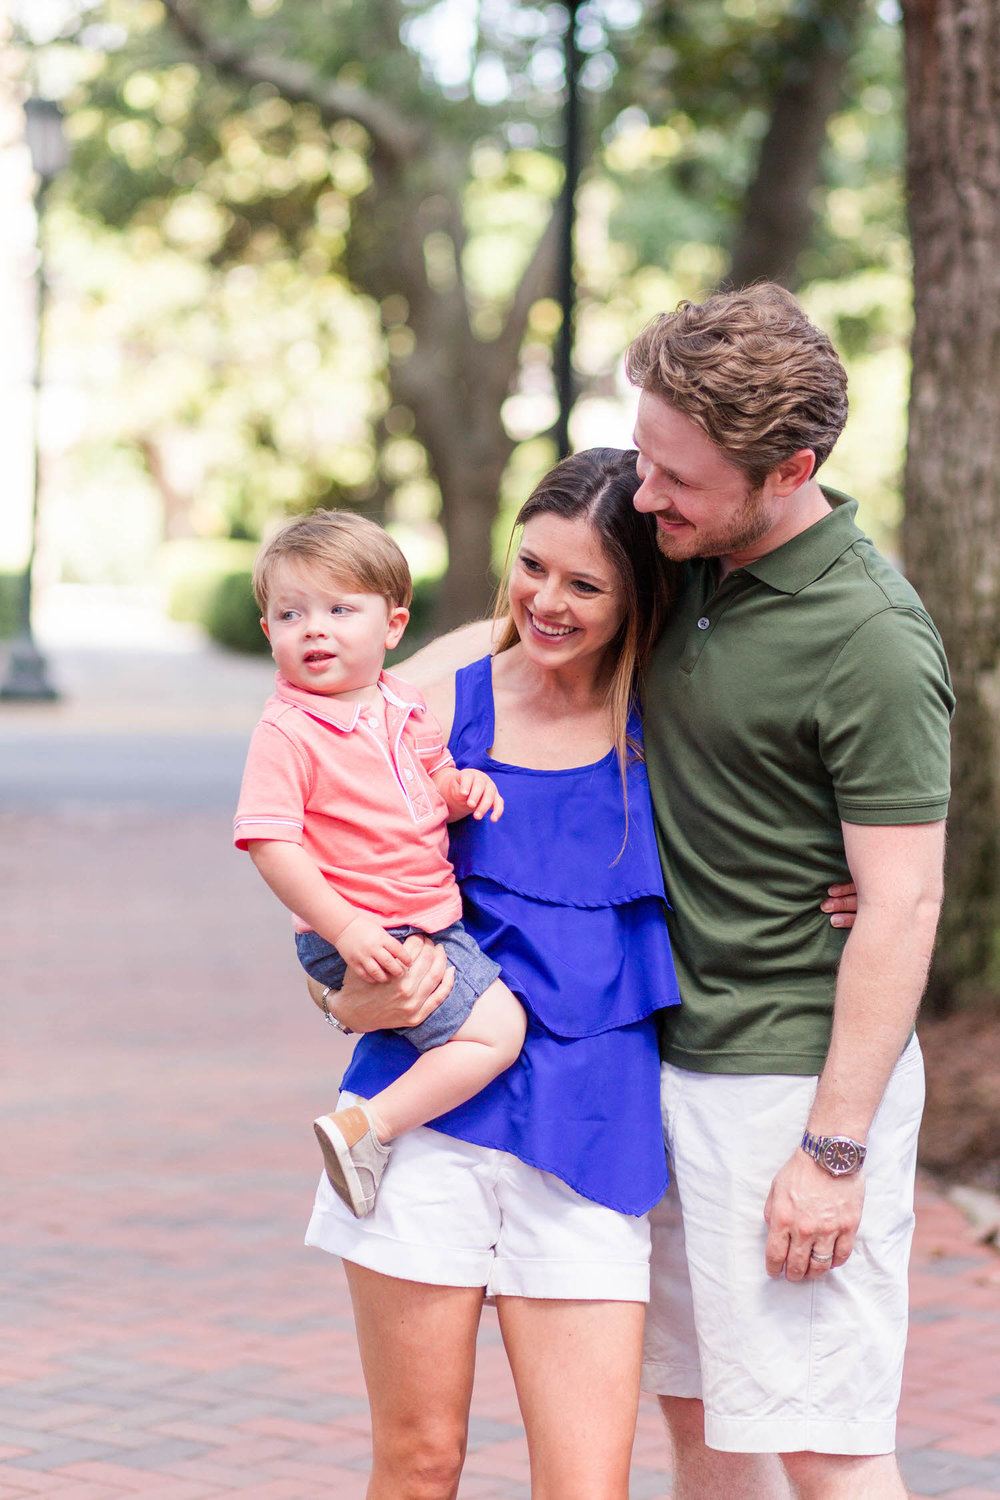 Ashley-AMBER-Photo-Greenville-Family-Photographer-170616.jpg